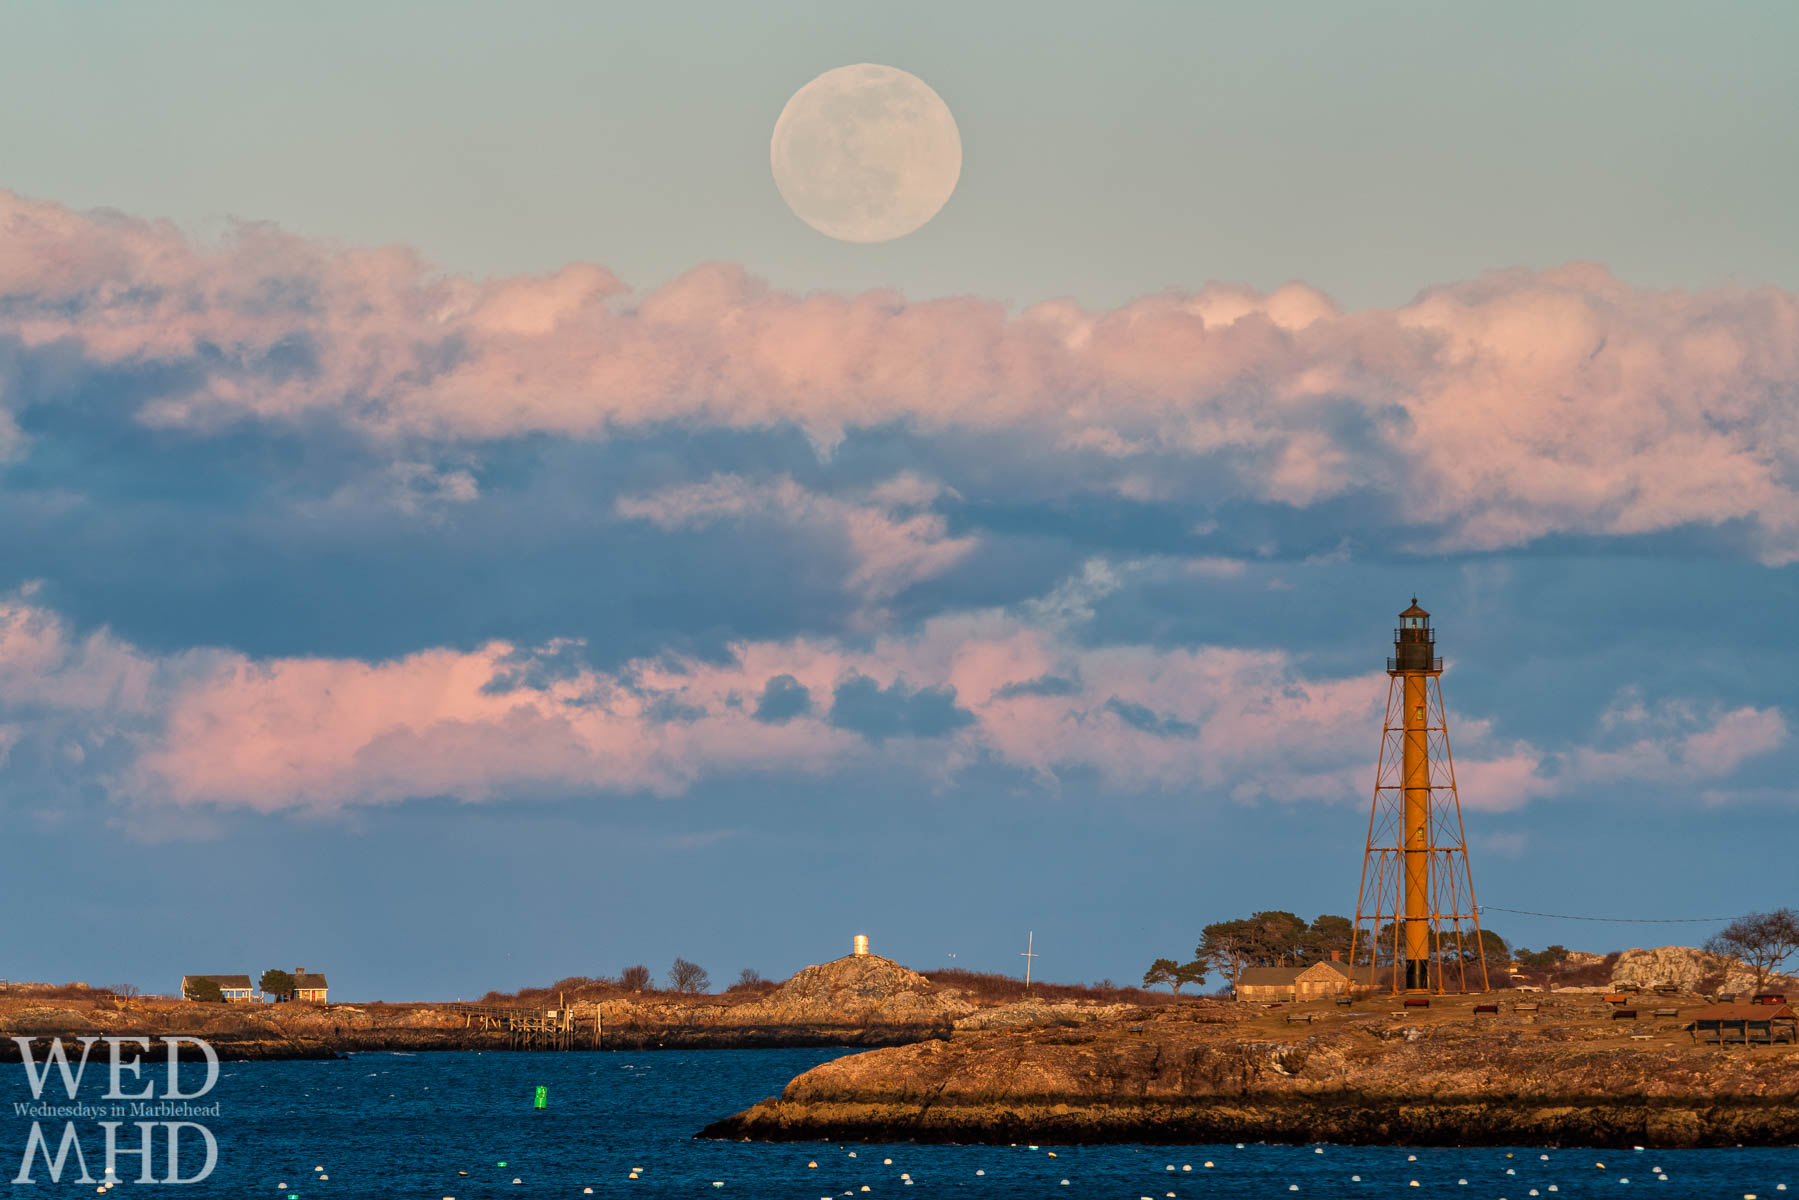 The moonrise over Marblehead light appears larger than life due to the use of a very long telephoto lens